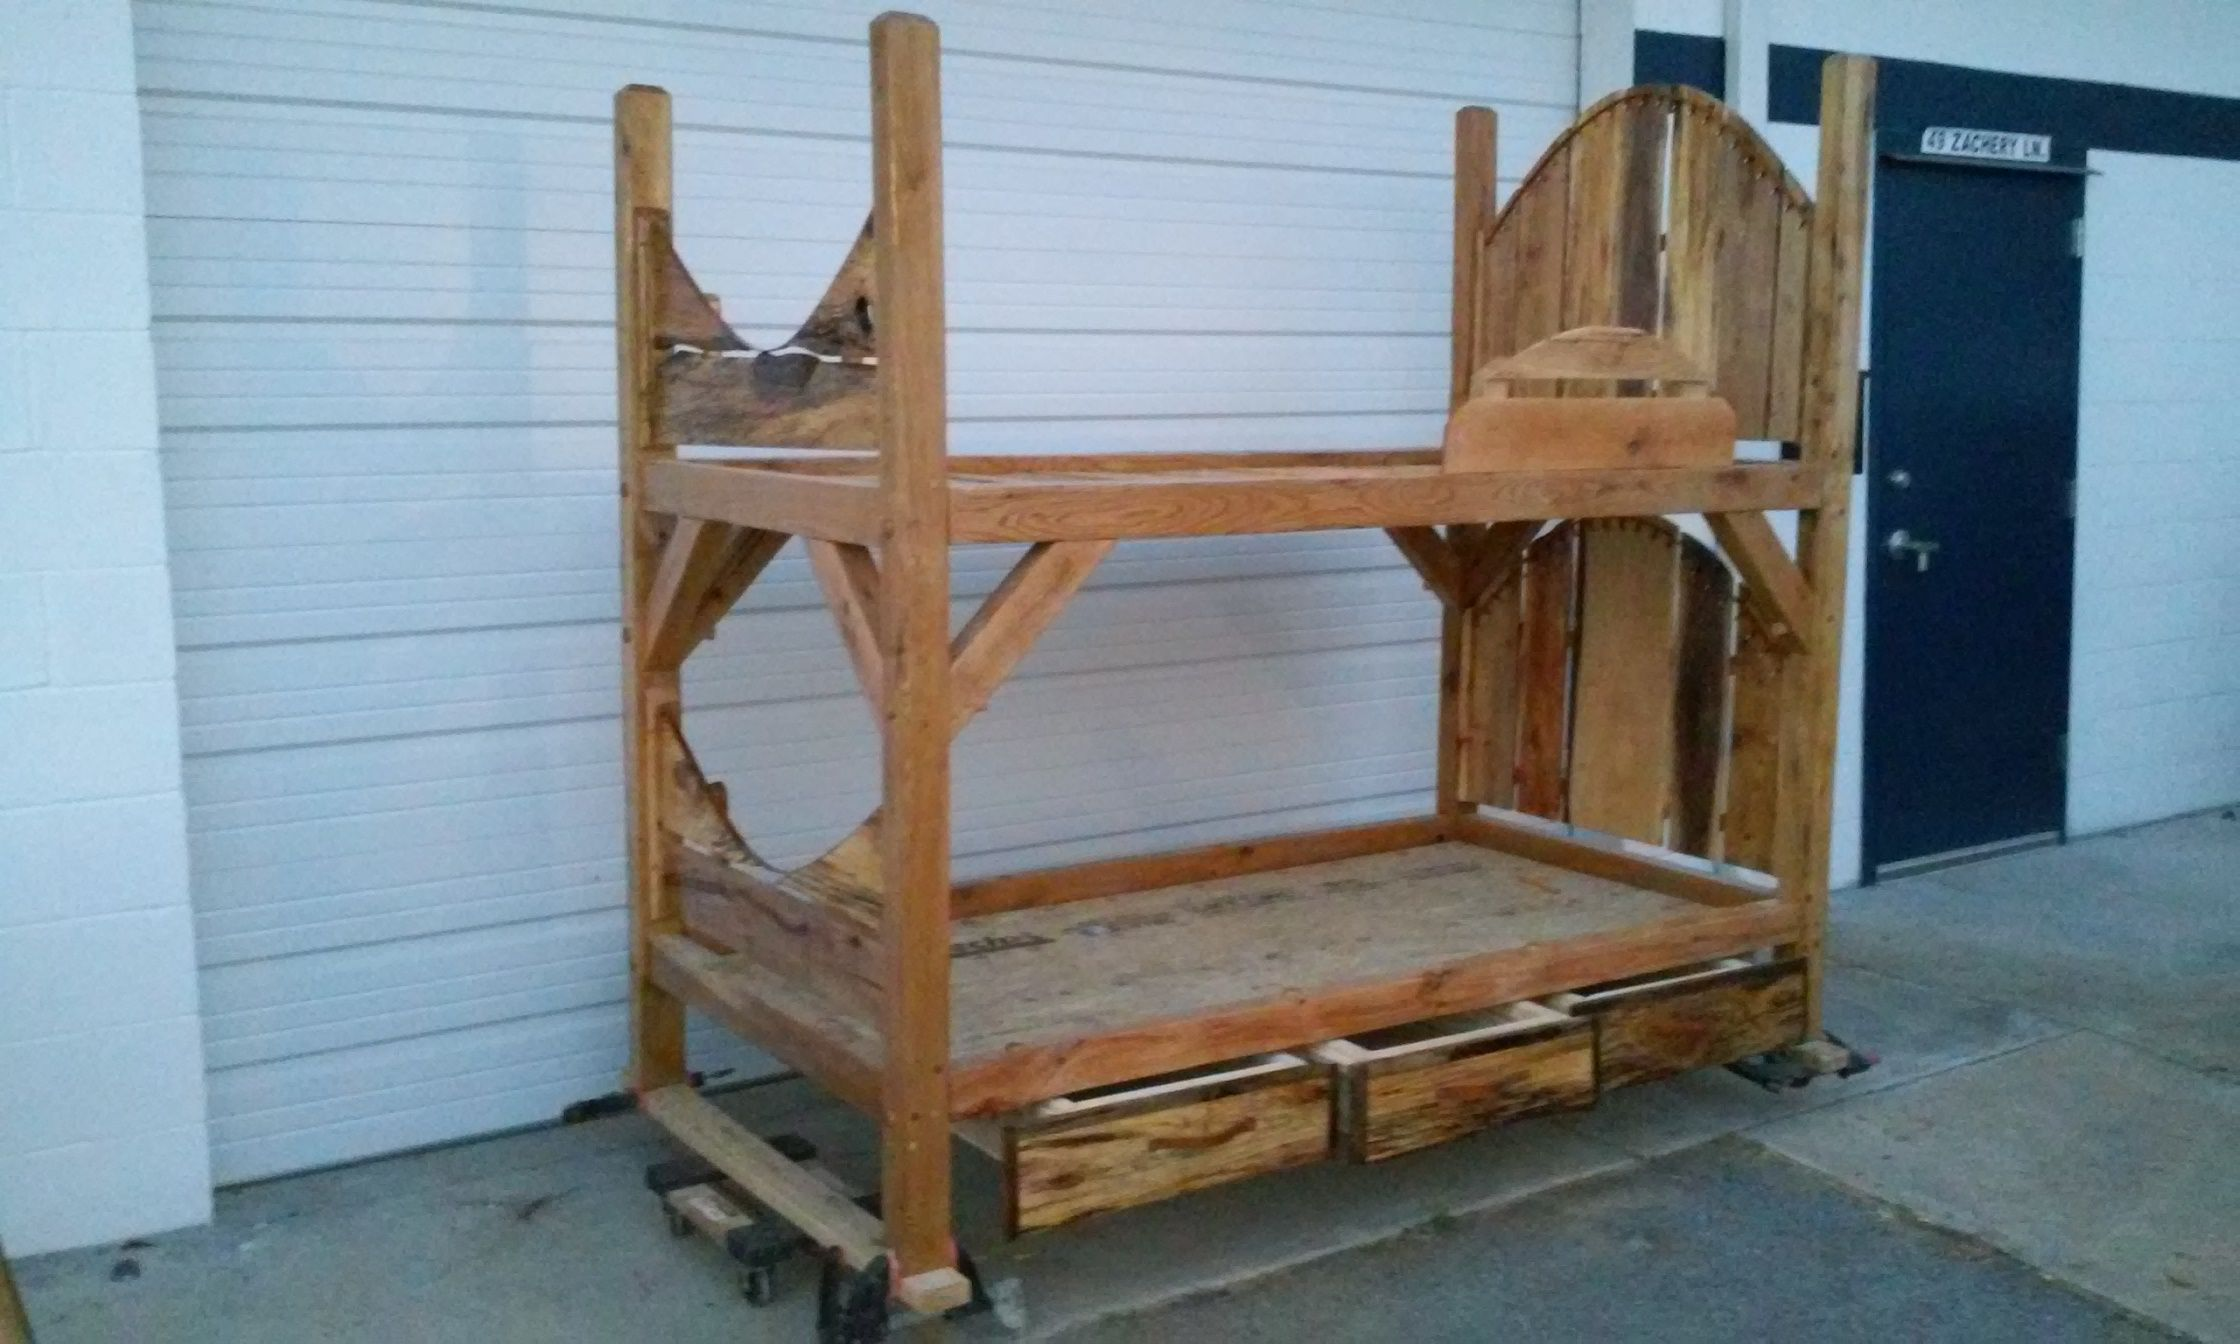 Rustic bunk with drawers. This bed features spalted wood